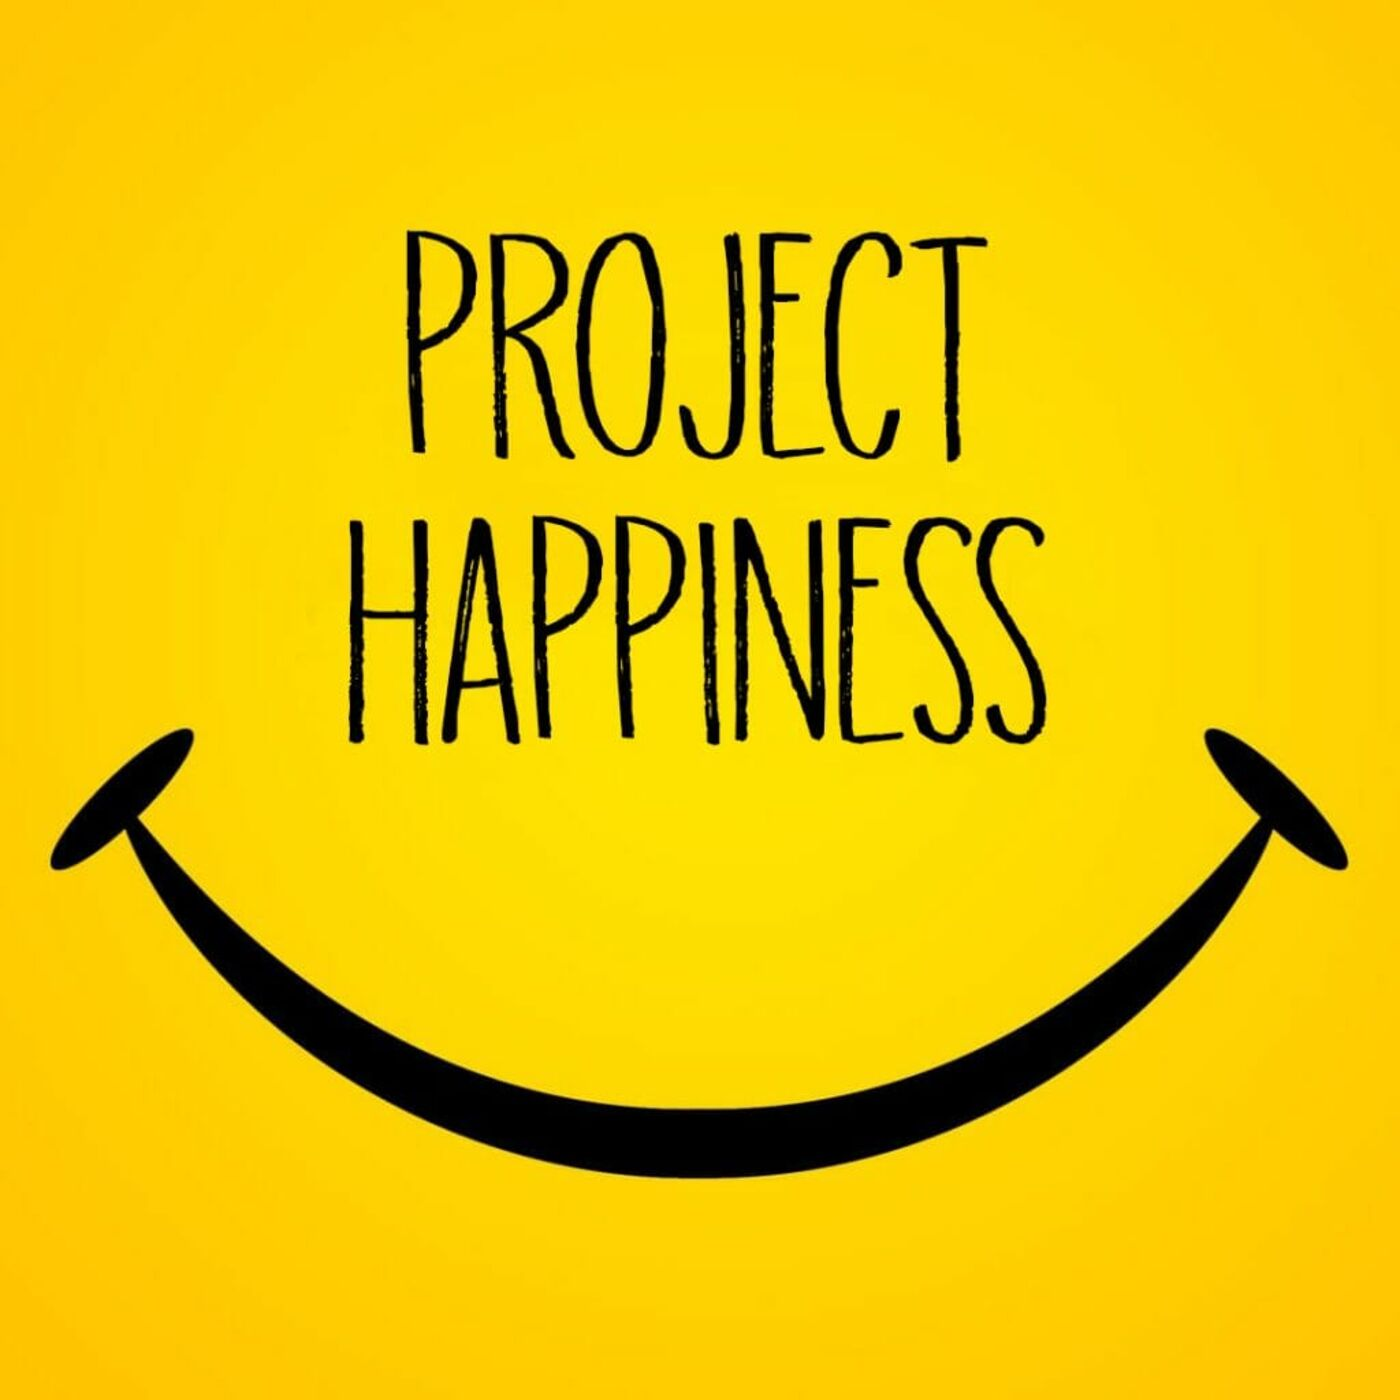 """Project Happiness: """"Being present in the moment/wealthy in time not money"""""""